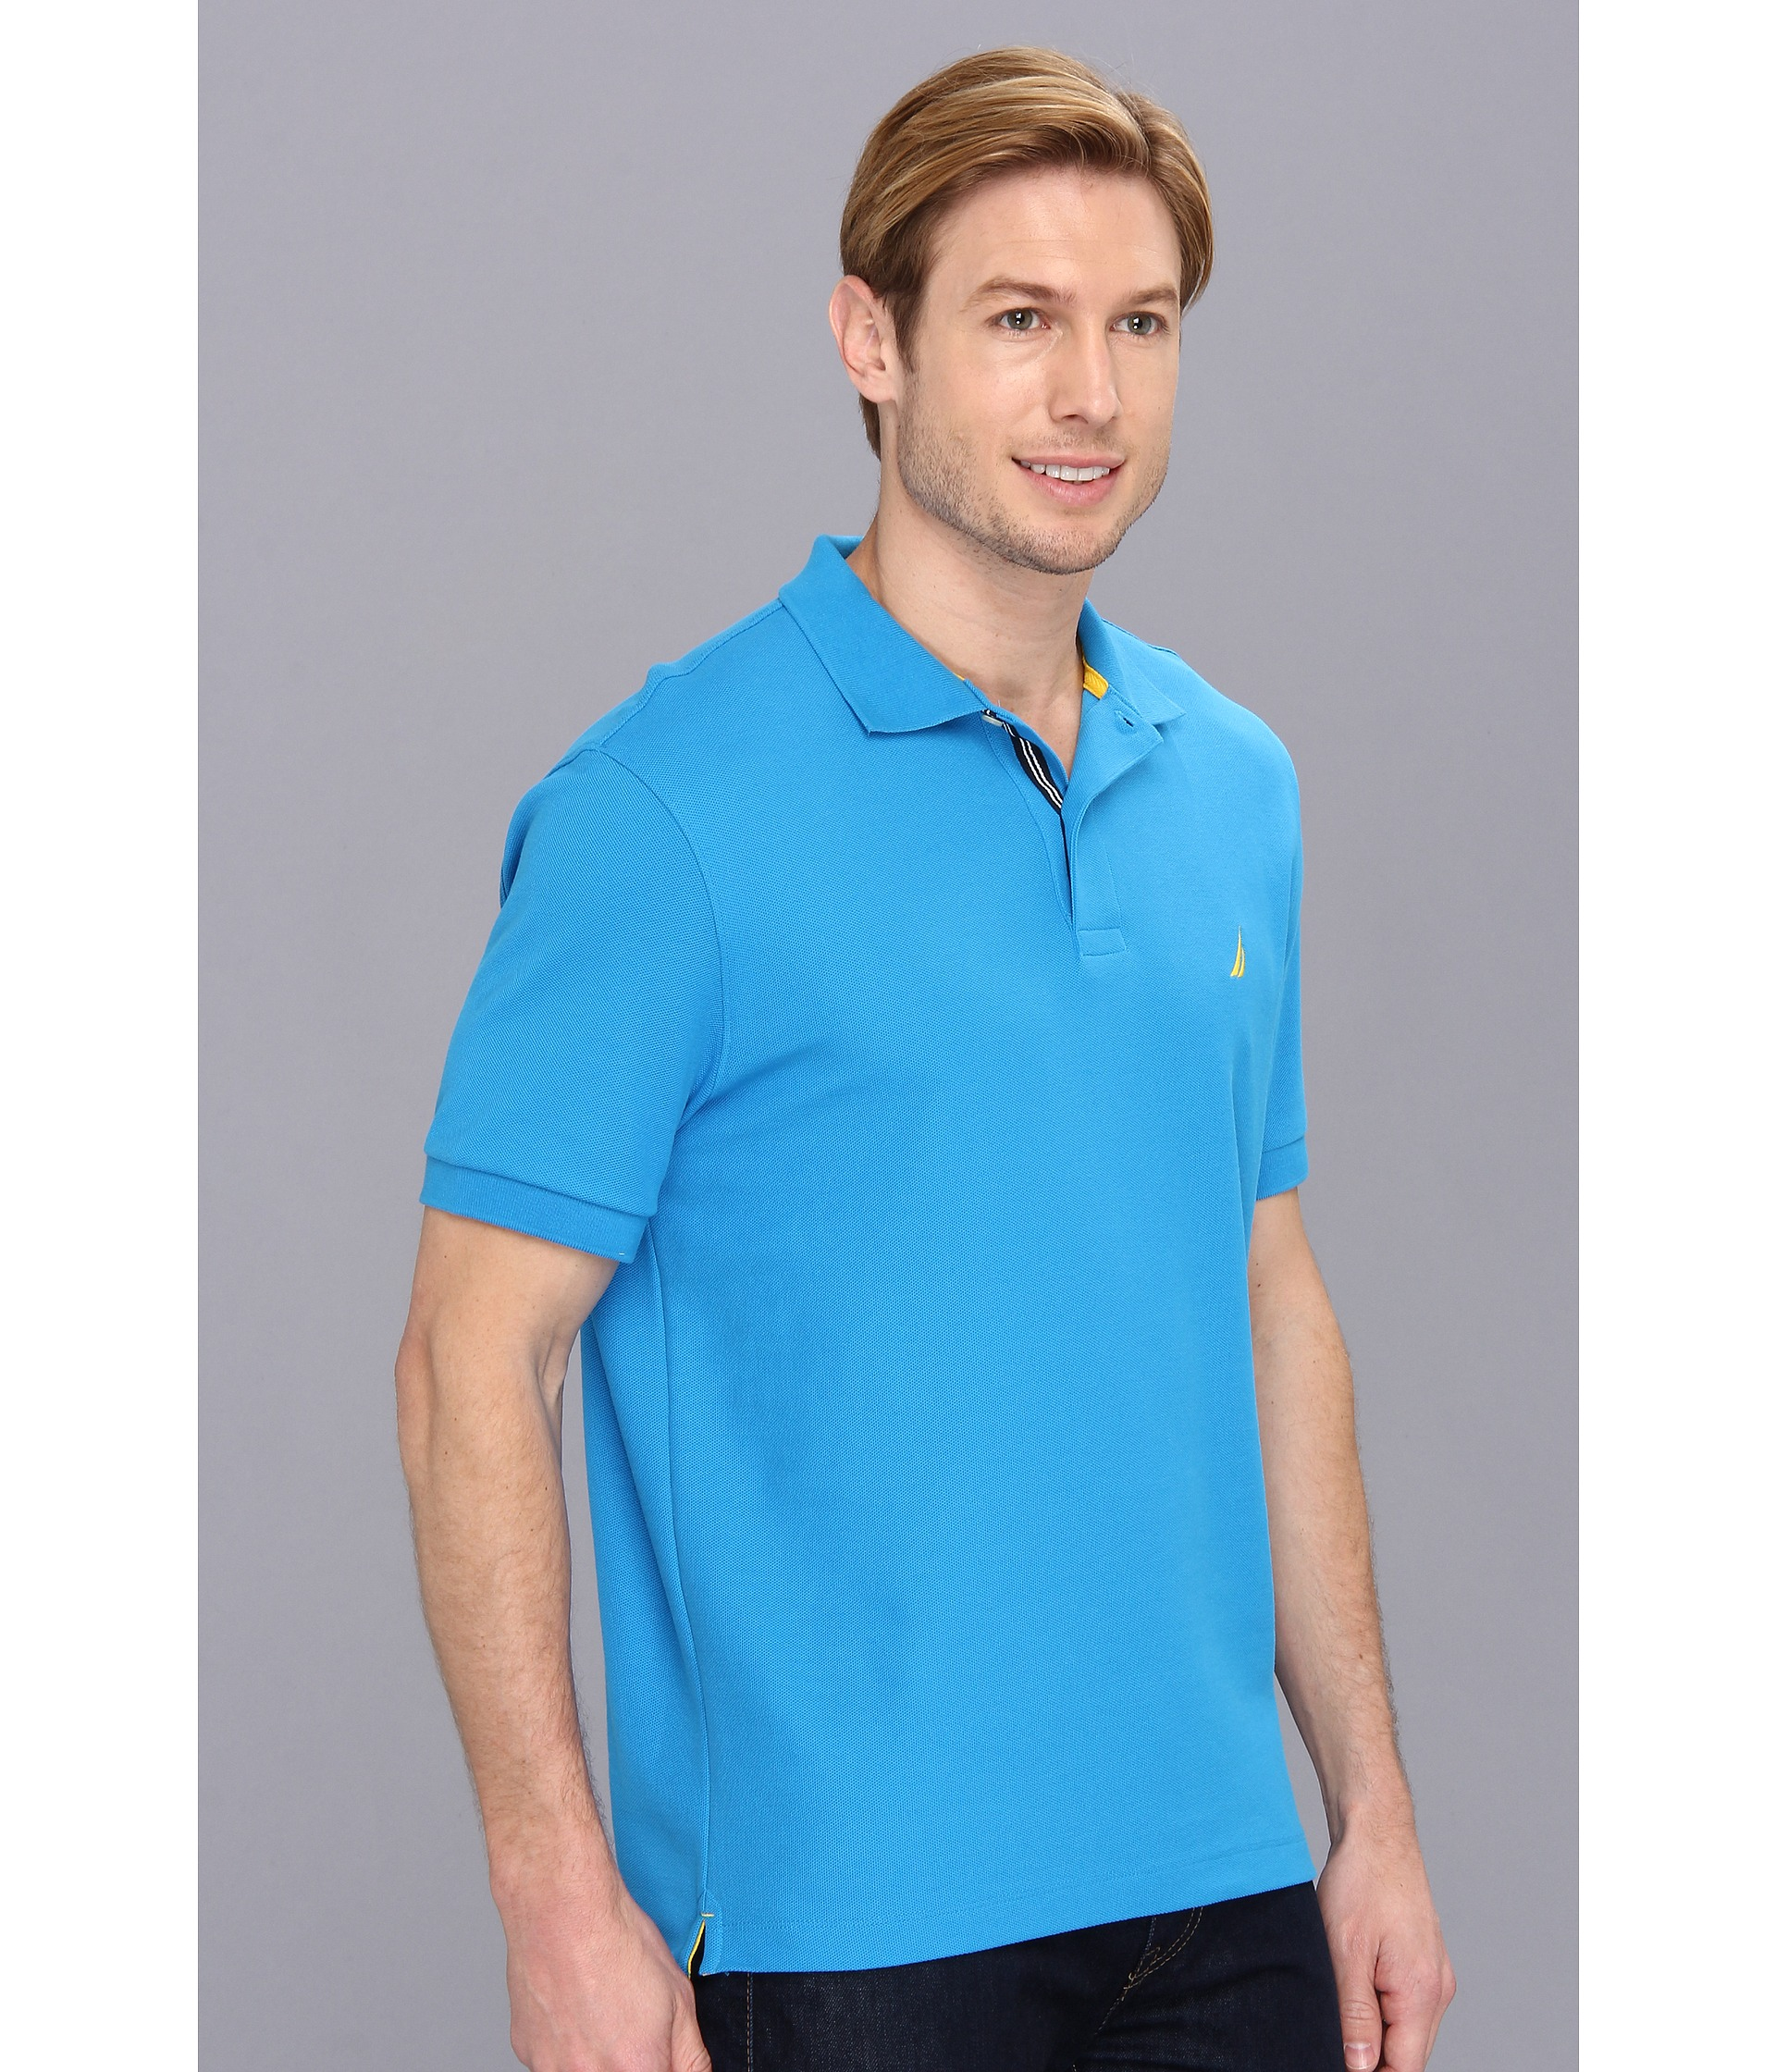 Nautica s s performance deck solid polo shirt shipped for Nautica shirts on sale